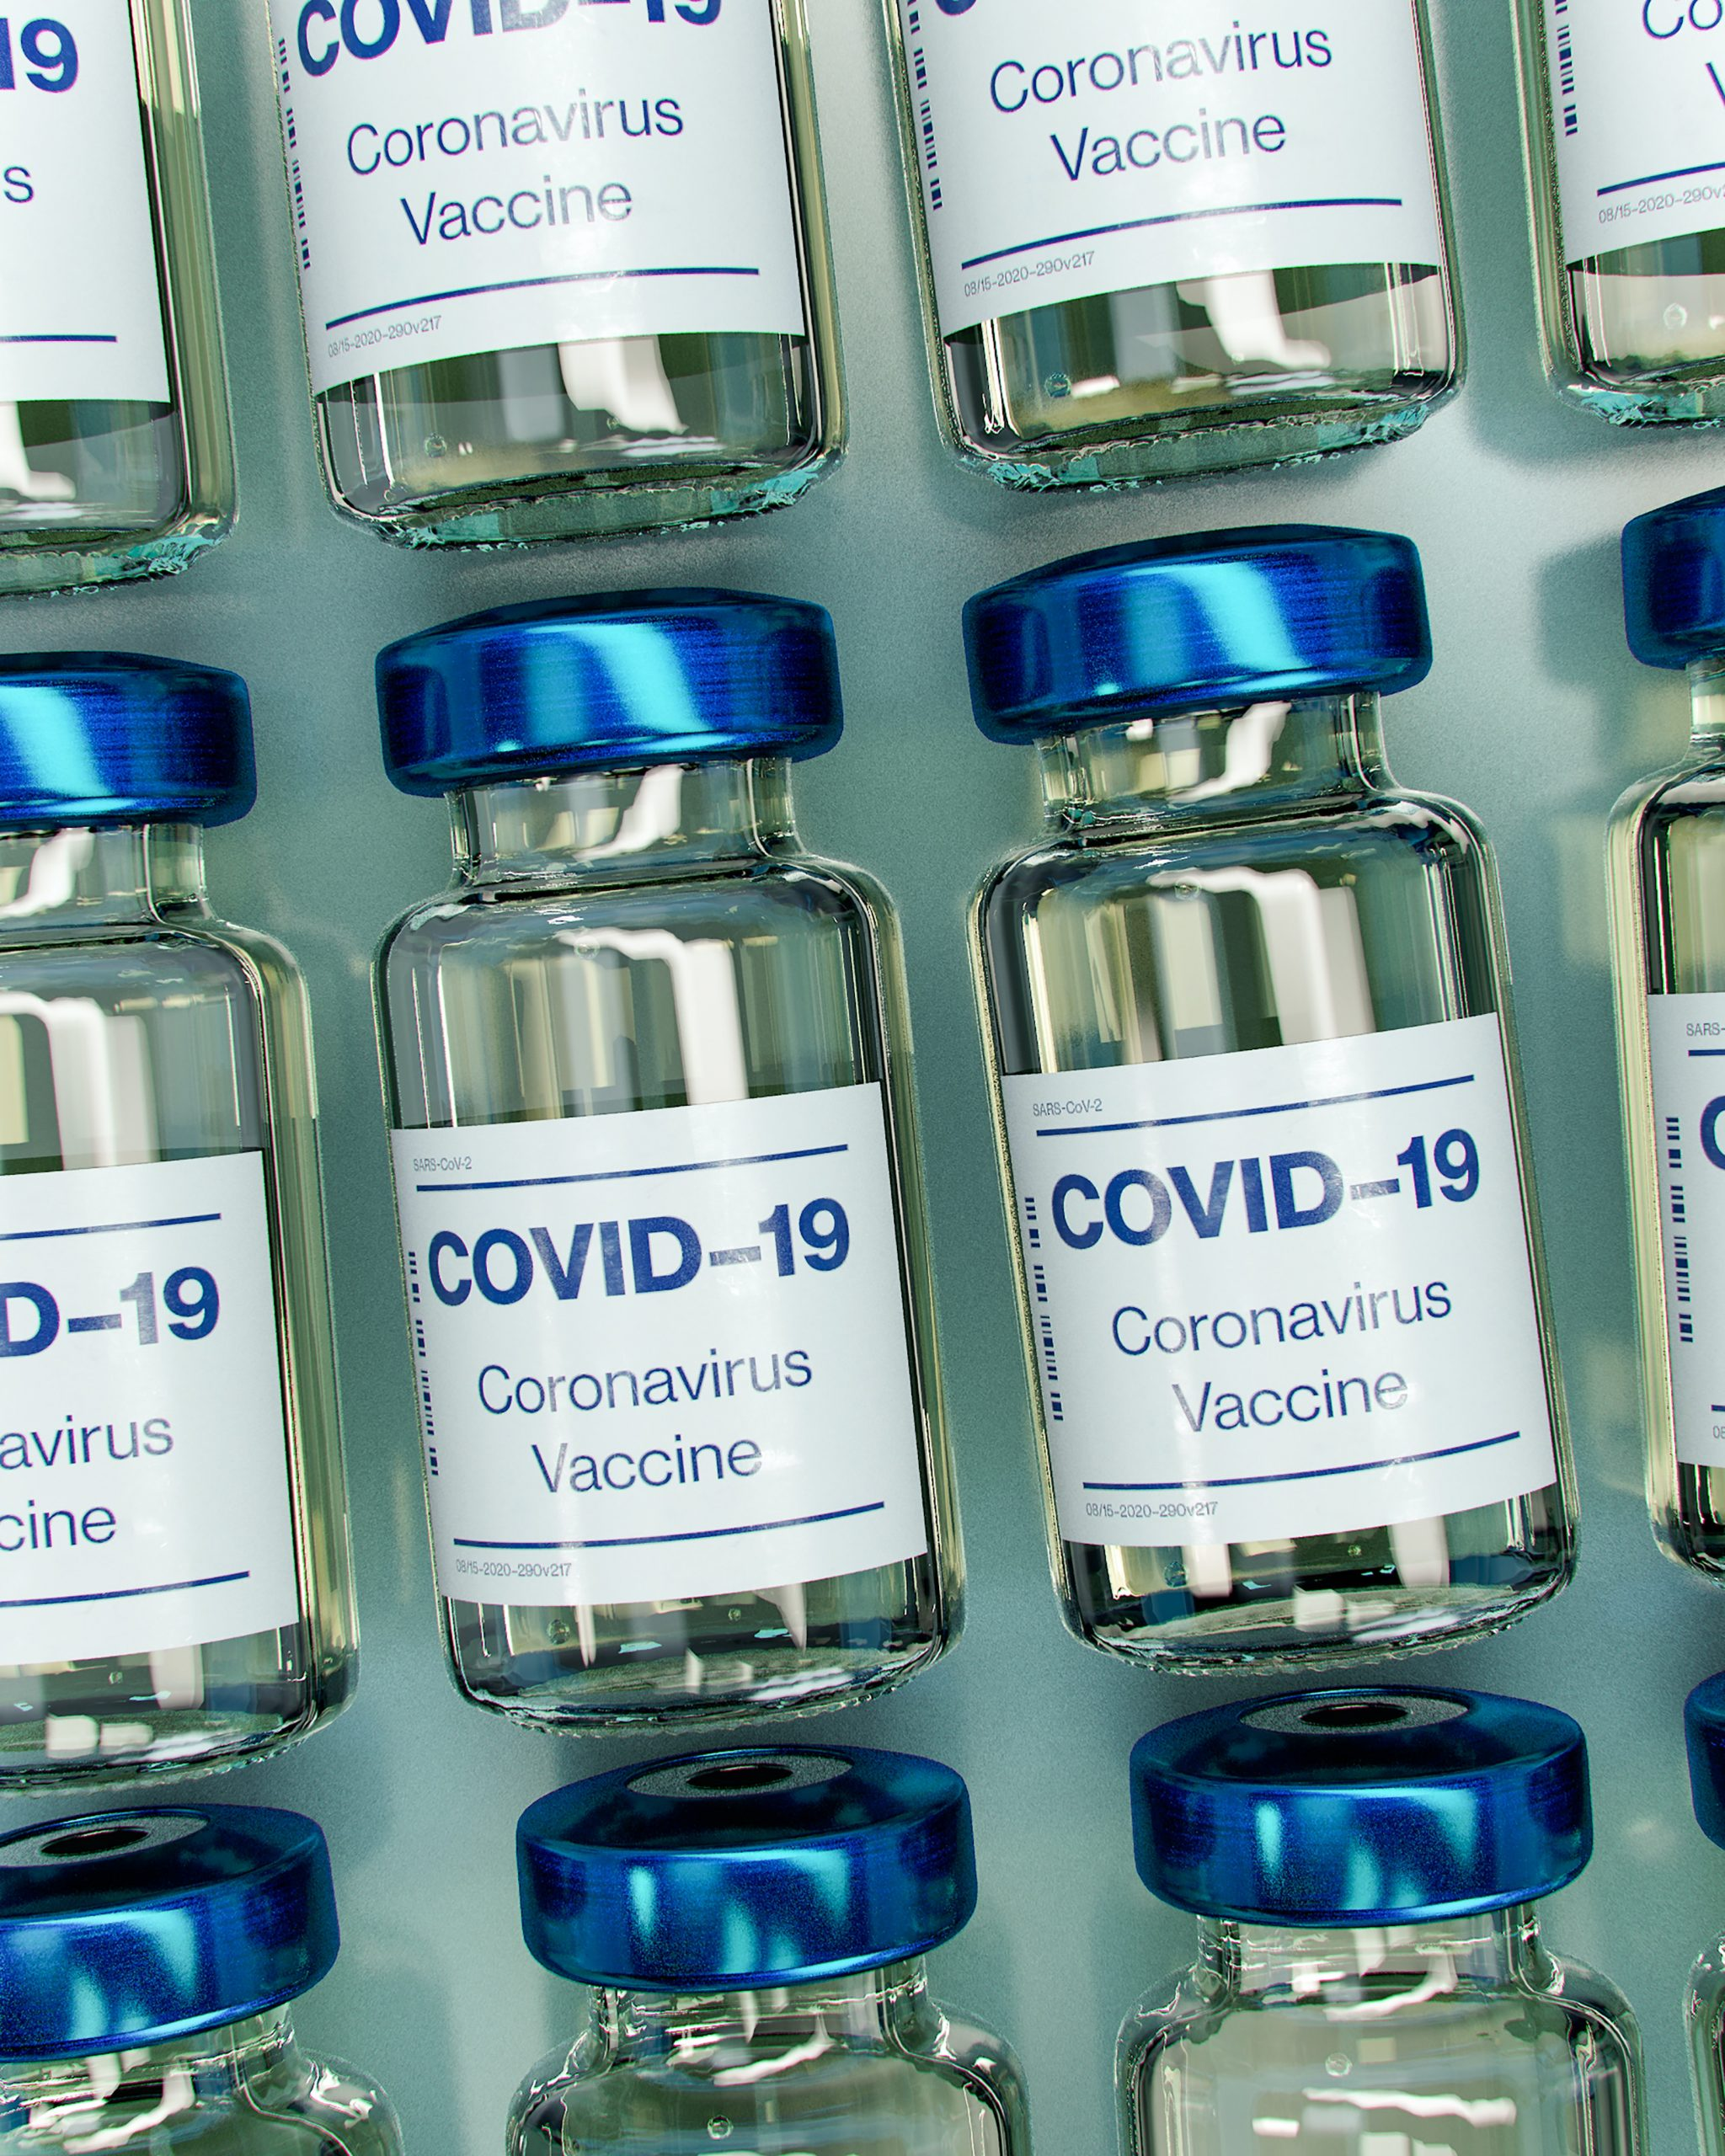 "DAUK on Medscape: ""UK COVID-19 Update: Jab 'Likely' to Protect Against New Variant"""